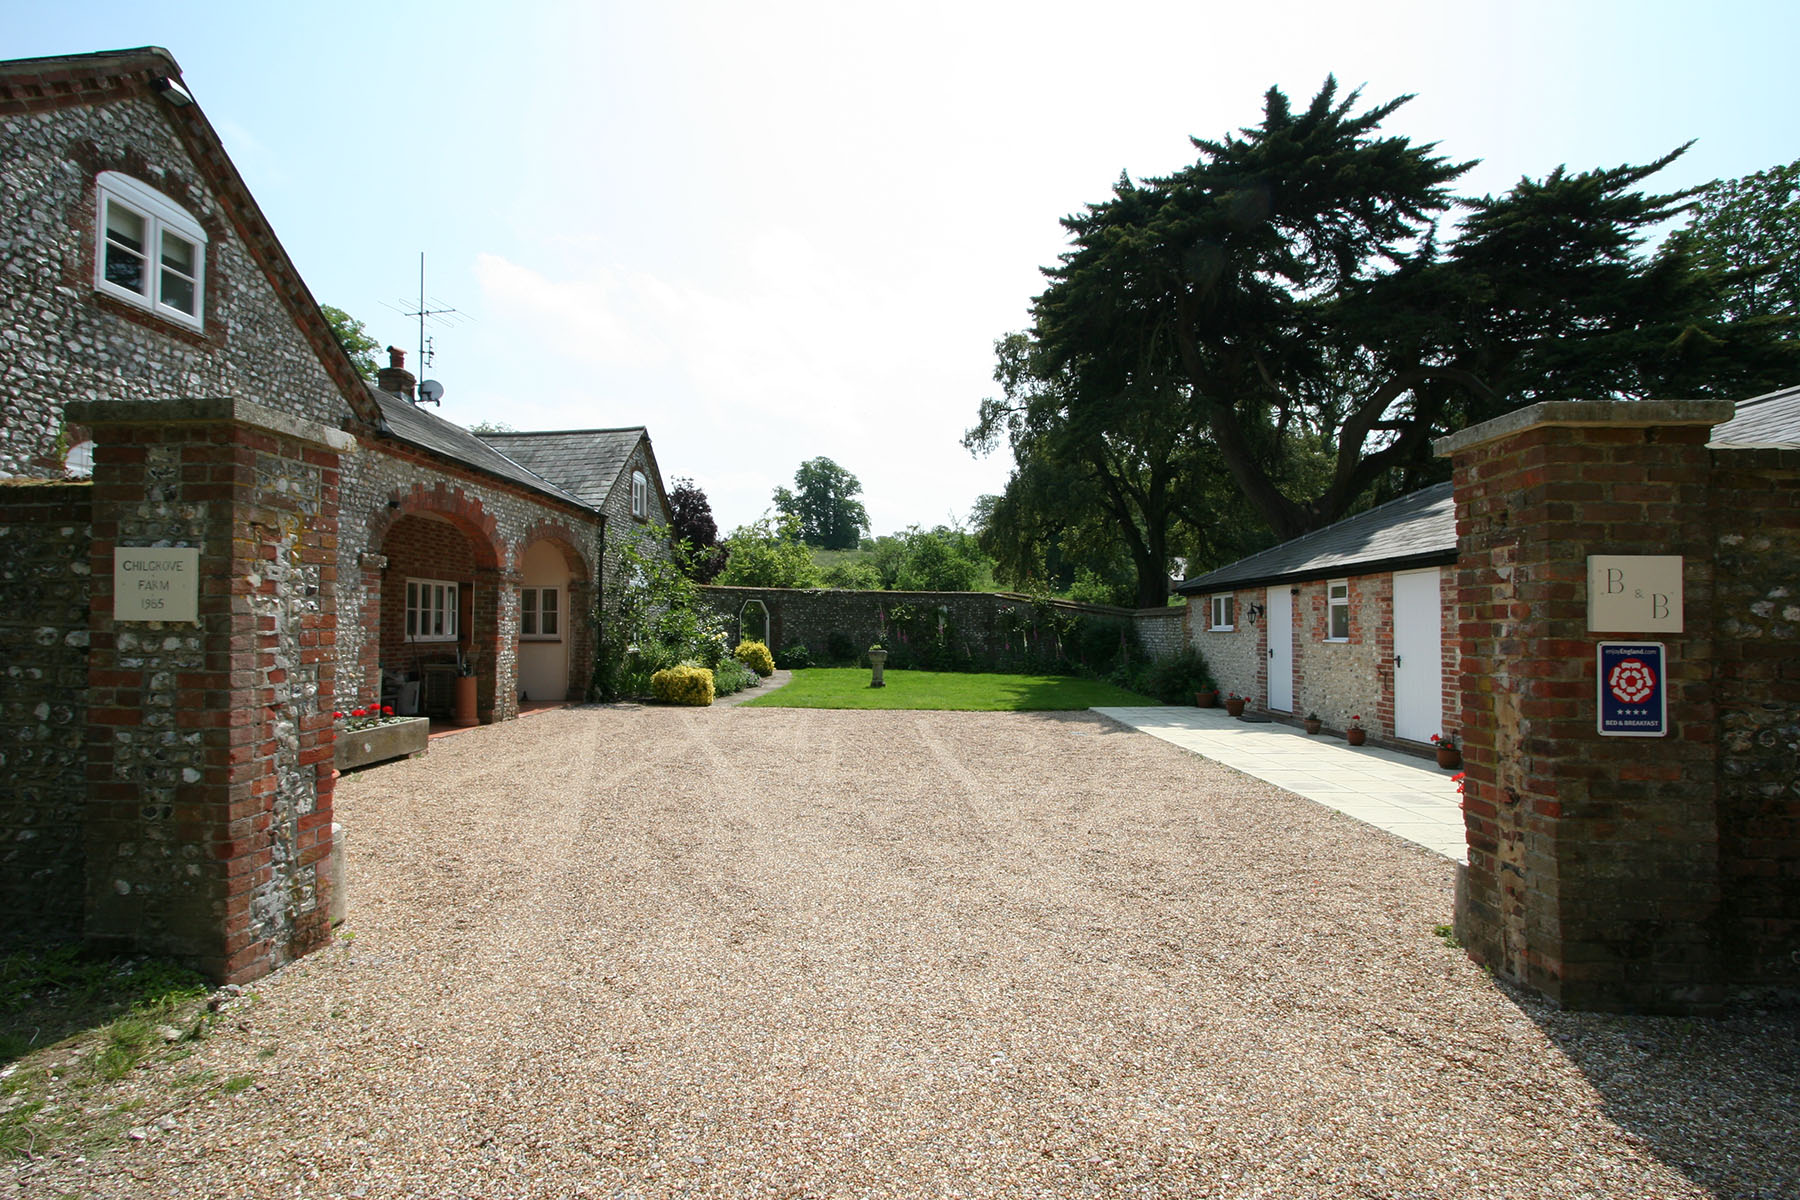 Chilgrove Farm Bed & Breakfast, Chilgrove, near Chichester, West Sussex